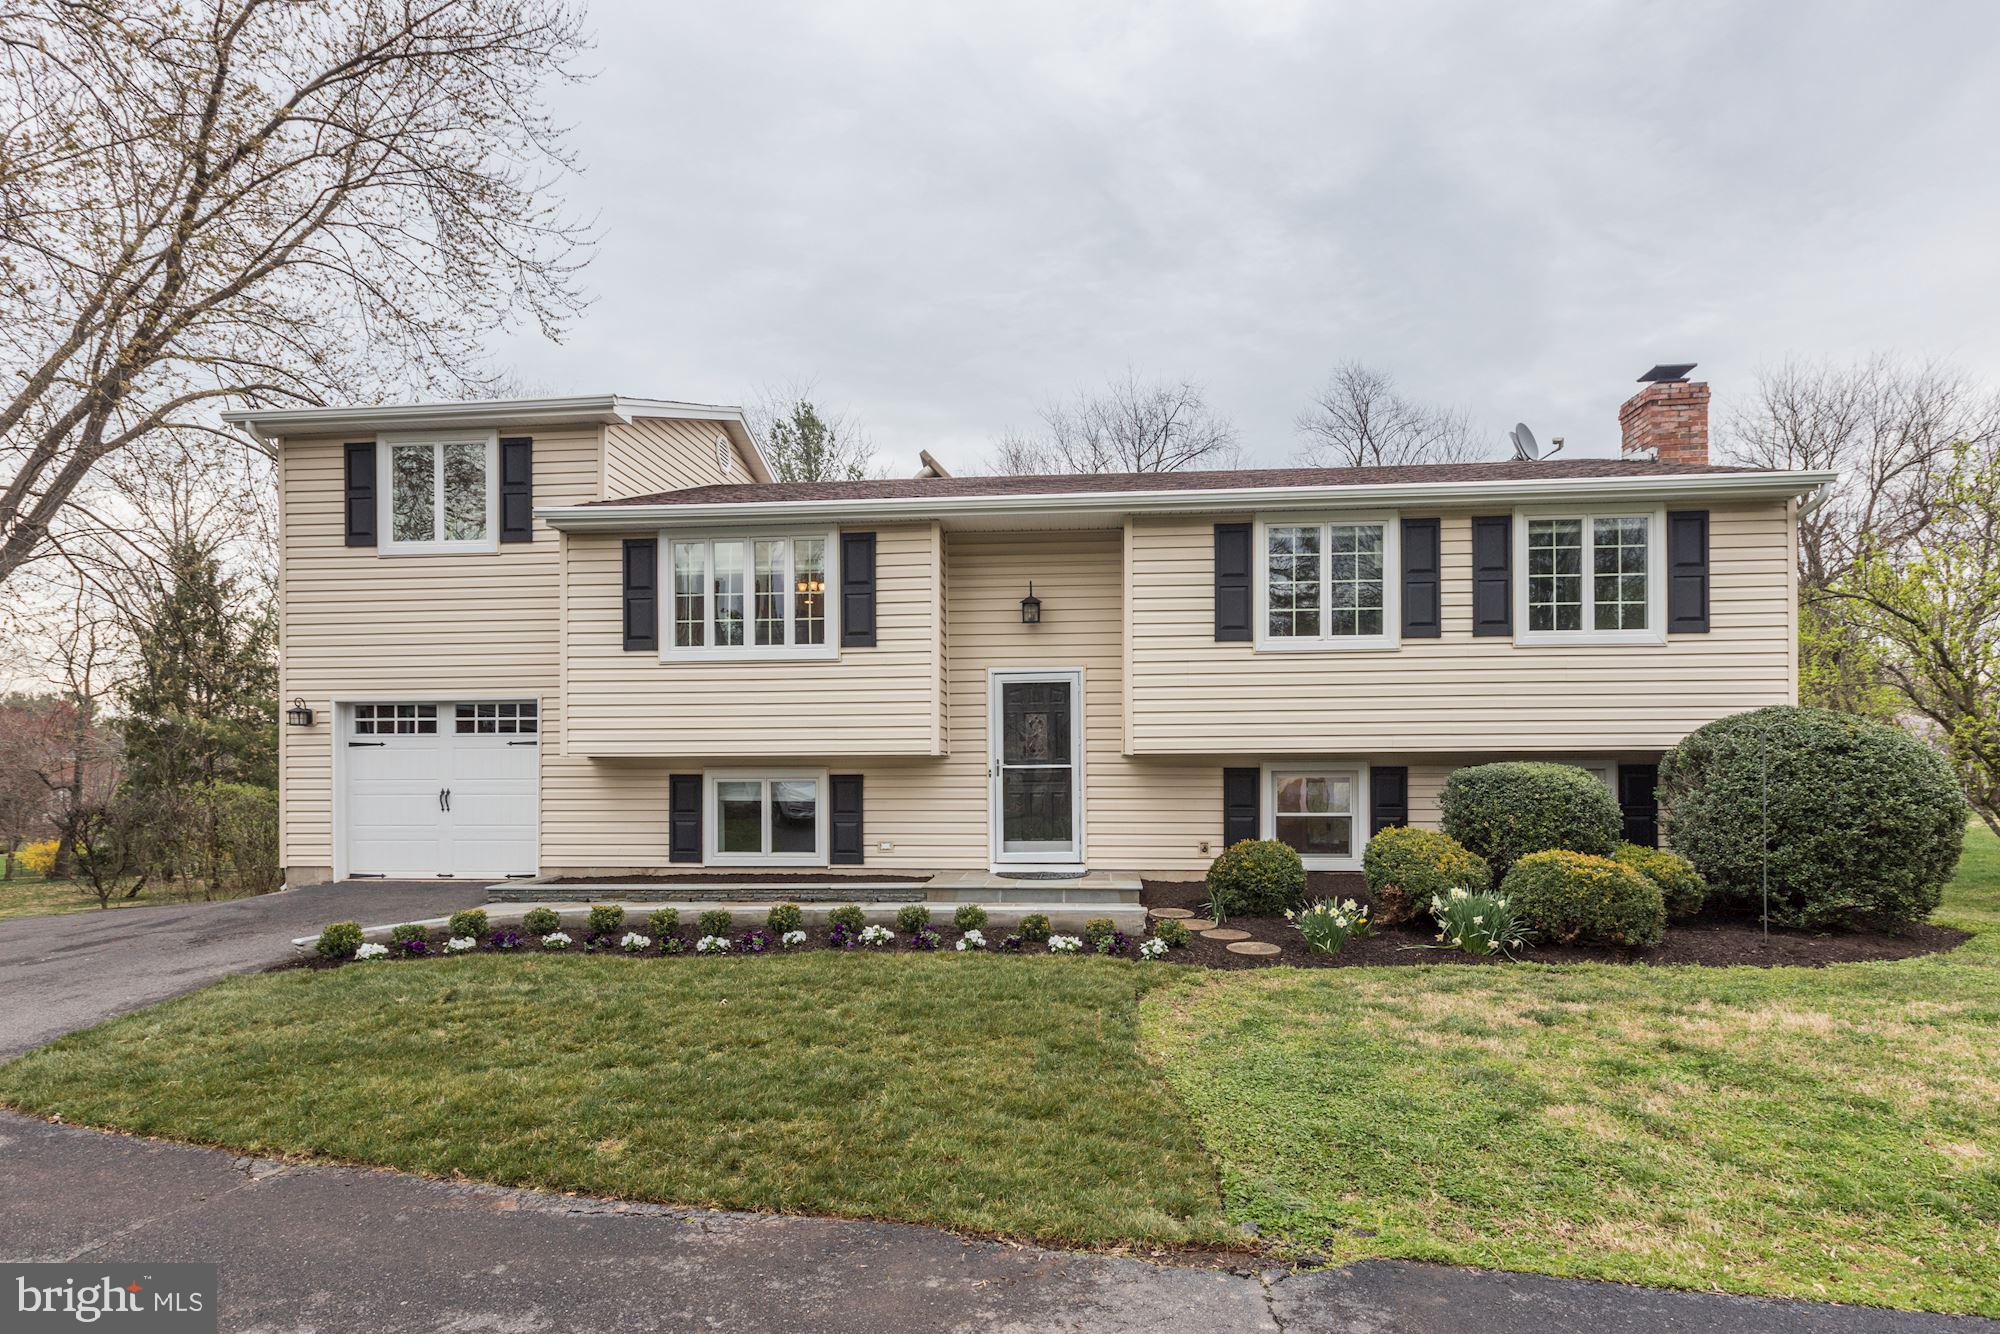 This updated split-foyer house is nestled at the end of a cul-de-sac on a private drive.  Located in the Falls Manor community of sought-after Lexington Estates and award-winning Langley High School Pyramid.  The .66 acre yard with its chestnut, fig, apple and cherry trees (makes for great pies!) feels more like a large, two-acre property given the wide-open common space adjacent to the property (yet without paying the additional taxes!). Inside, the inviting kitchen opens up to a sitting room with built-in shelves/bookcases and flows out to the deck with a bucolic view of the expansive yard. The main level also includes three bedrooms and two full baths, and a bonus/flex room which can be used as an office, sitting room or bedroom. The lower level features a large family room with wood-burning fireplace and walk-out access to the backyard patio, a full bathroom, bedroom or office, and a mudroom located directly off of the garage. Much more to see and the location is hard to beat - secluded, yet only minutes from Great Falls Village.